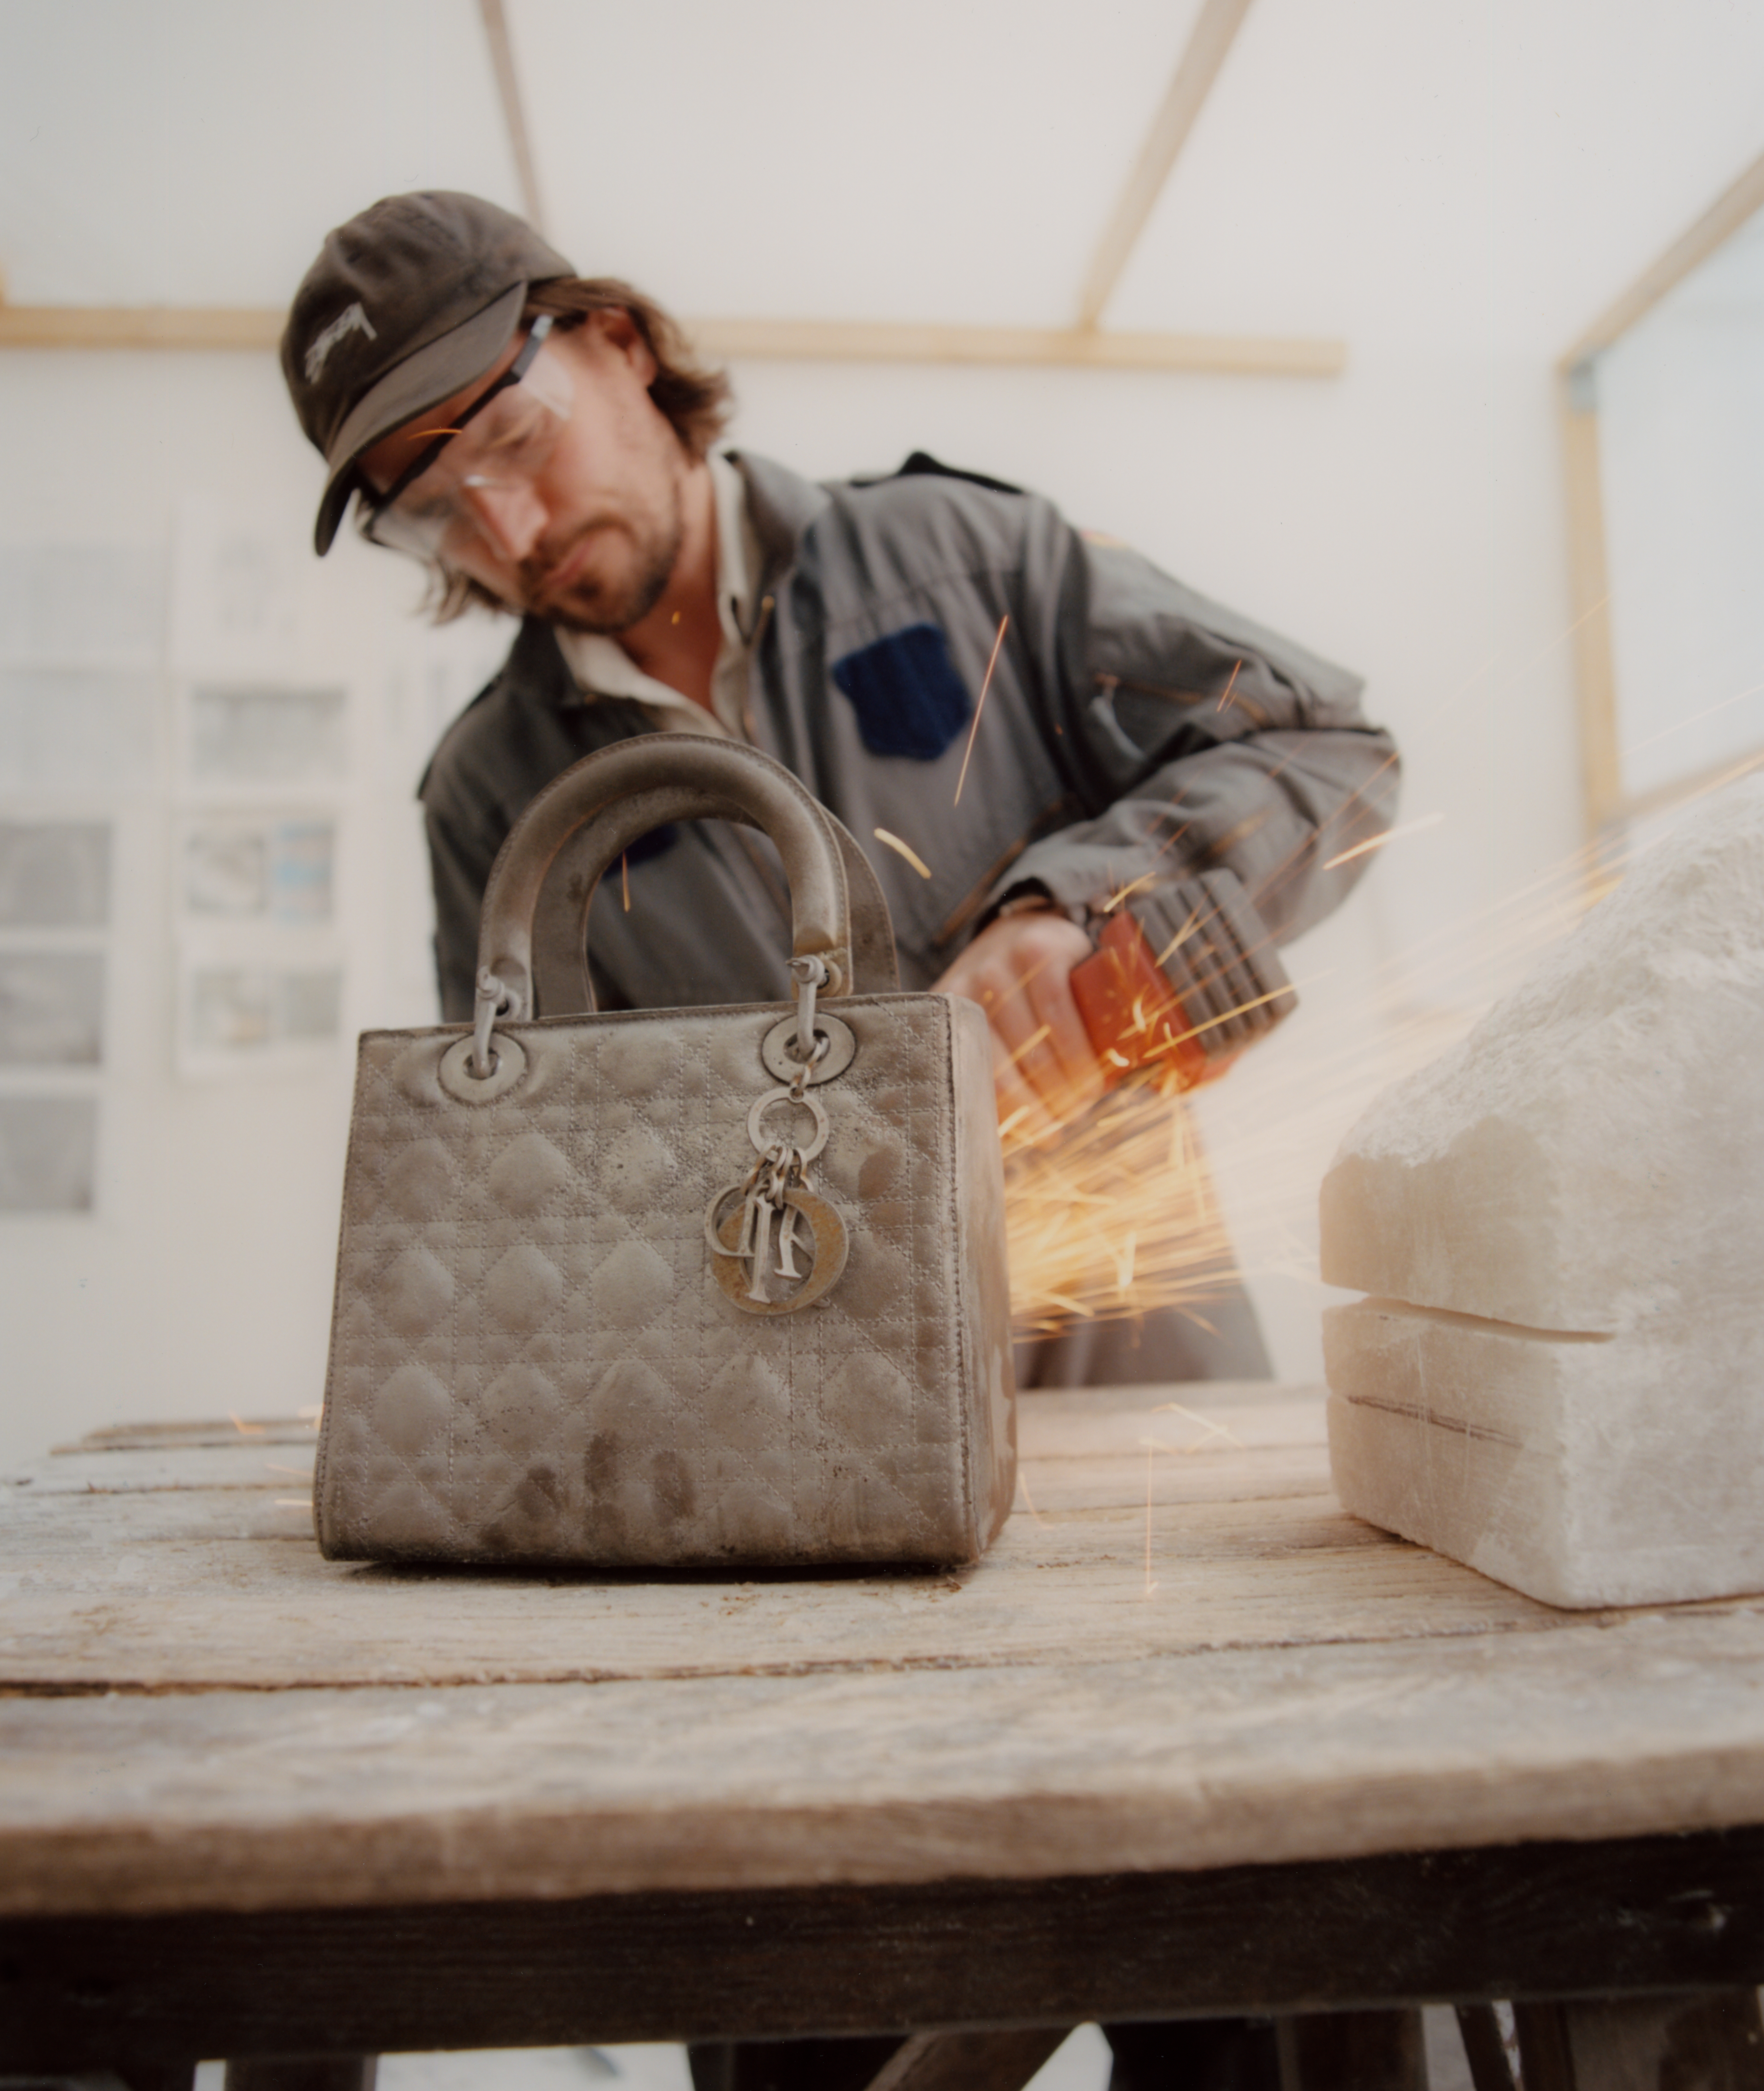 Michael-Sailstorfer at work on his iron Lady Dior.